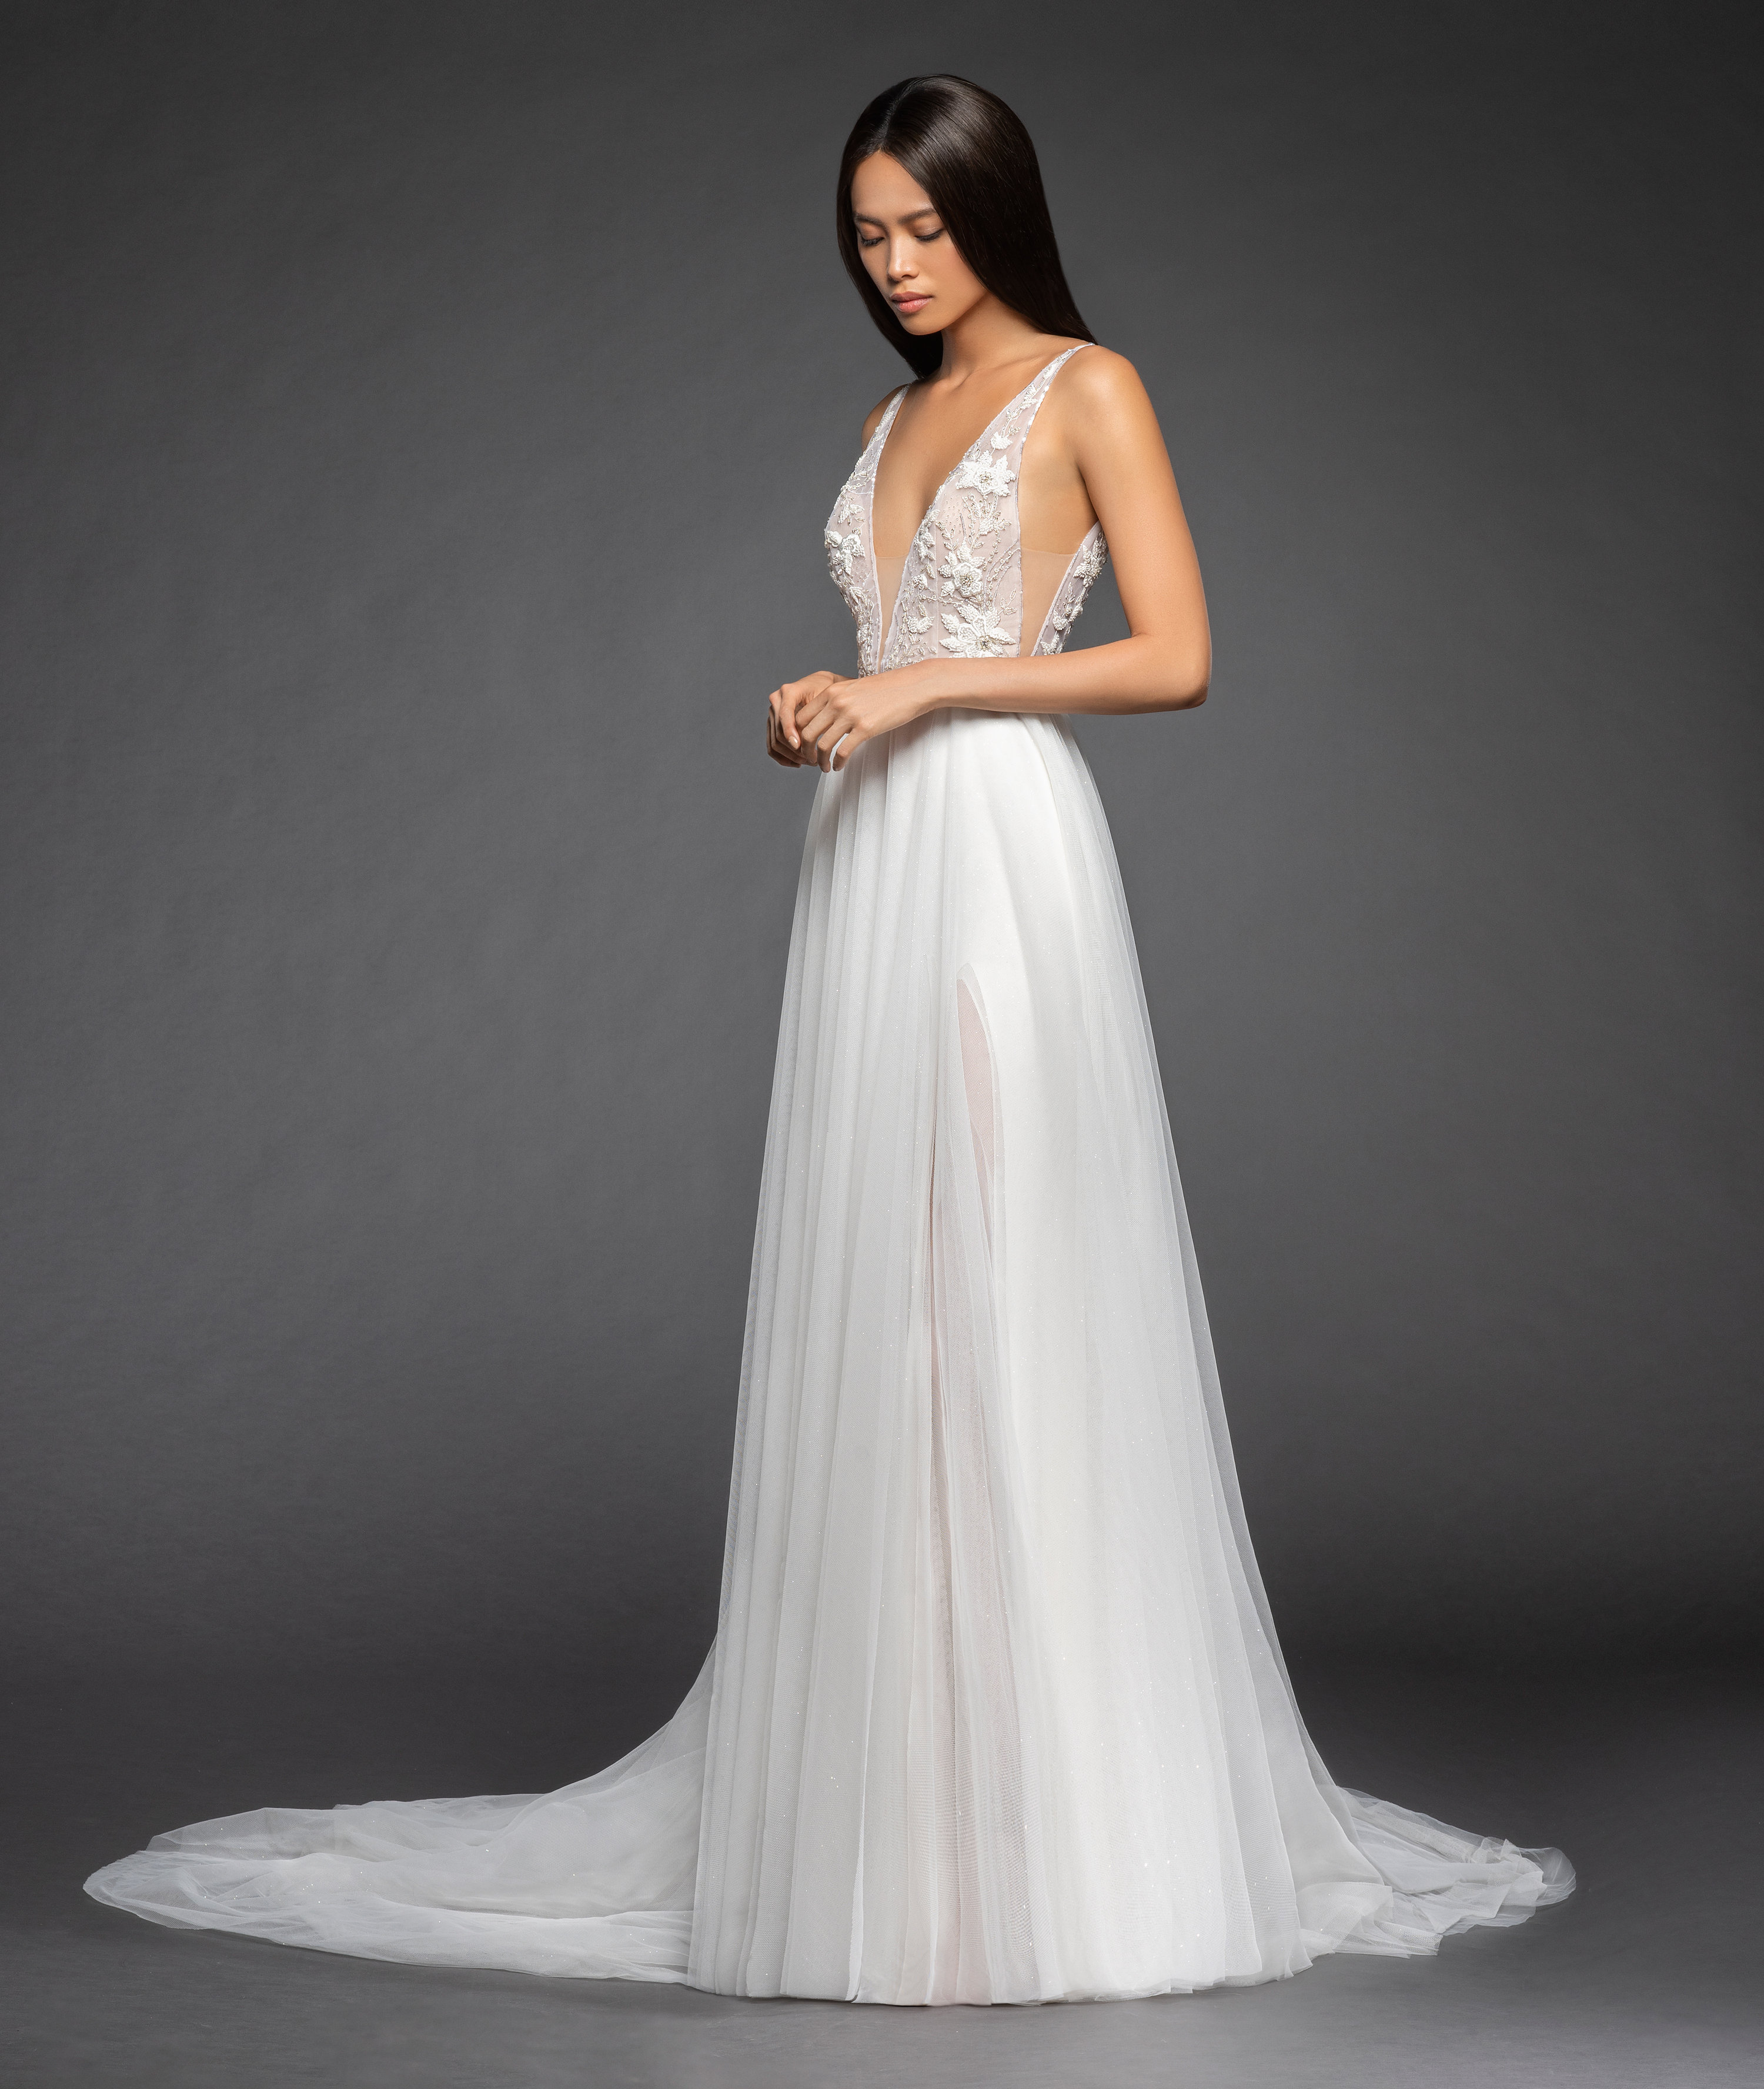 Wedding Gown With Neck Detail: Sleeveless Deep V-neck Beaded Floral Bodice Tulle Skirt A